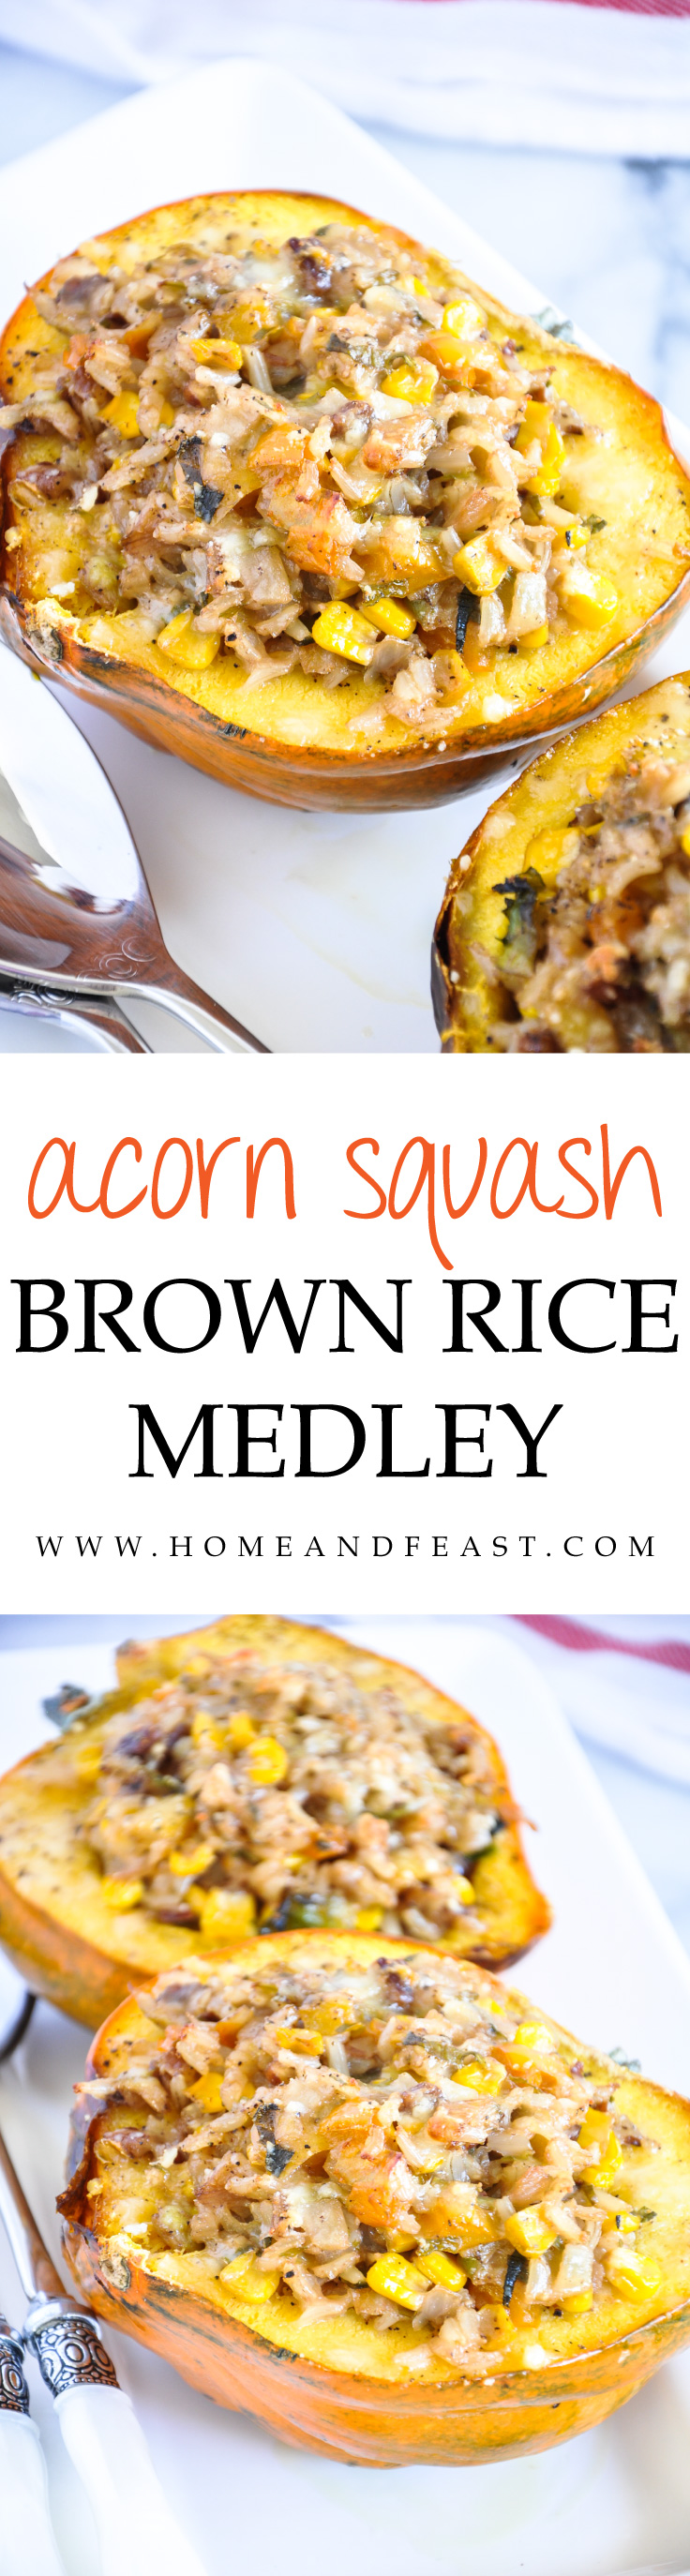 Roasted Acorn Squash With Brown Rice Medley